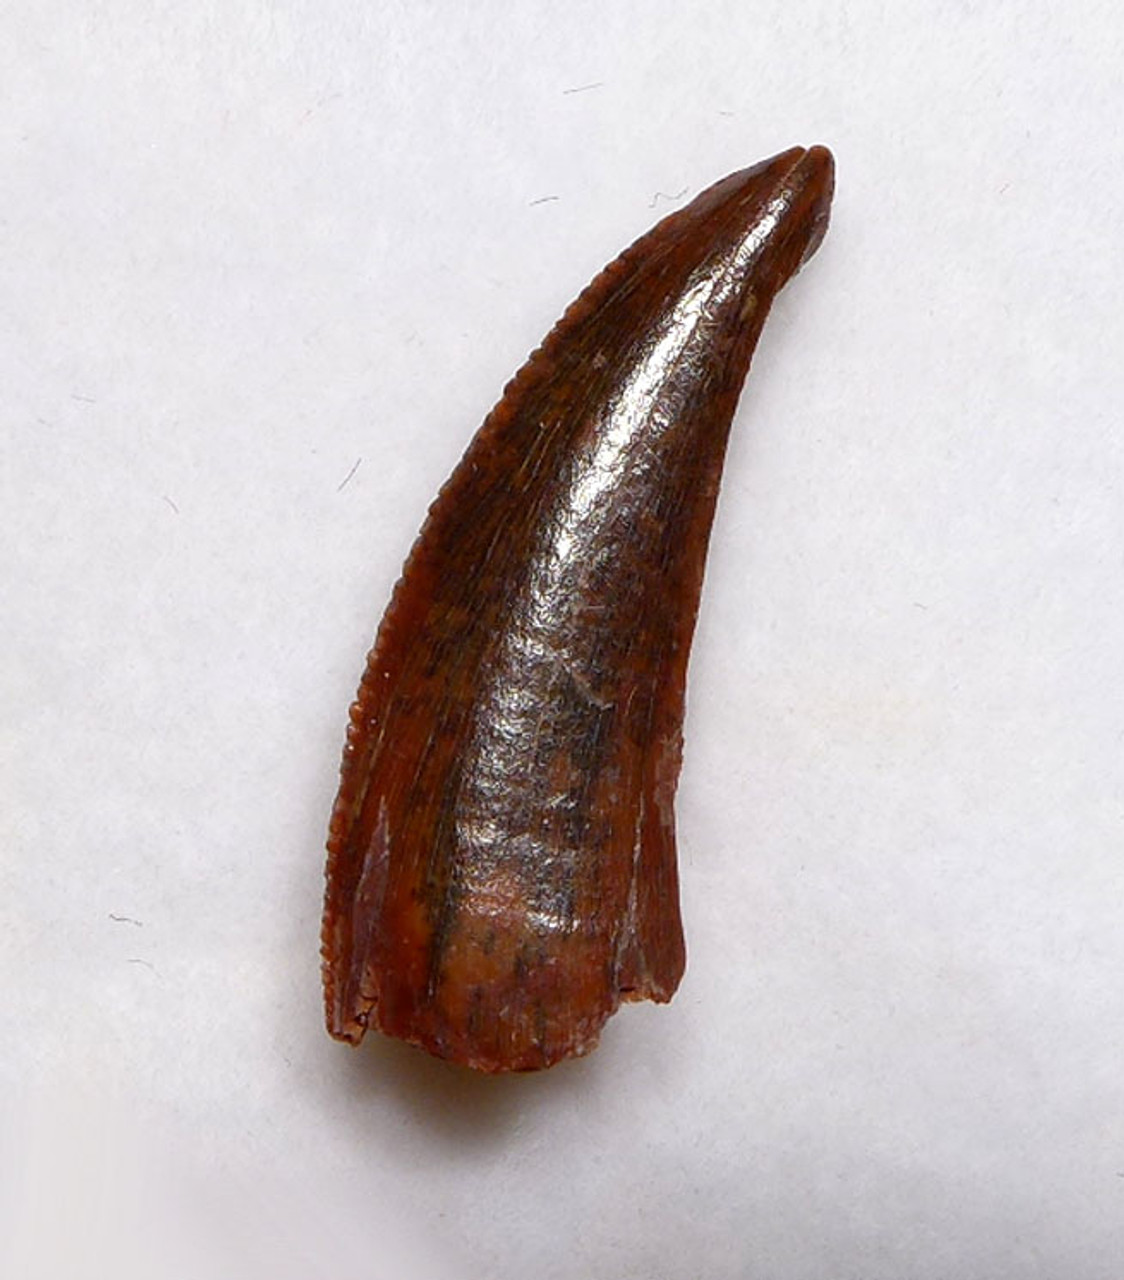 RAPTOR TOOTH FROM A LARGE DROMAEOSAUR DINOSAUR WITH UNUSUAL FEEDING WEAR   *DT6-330